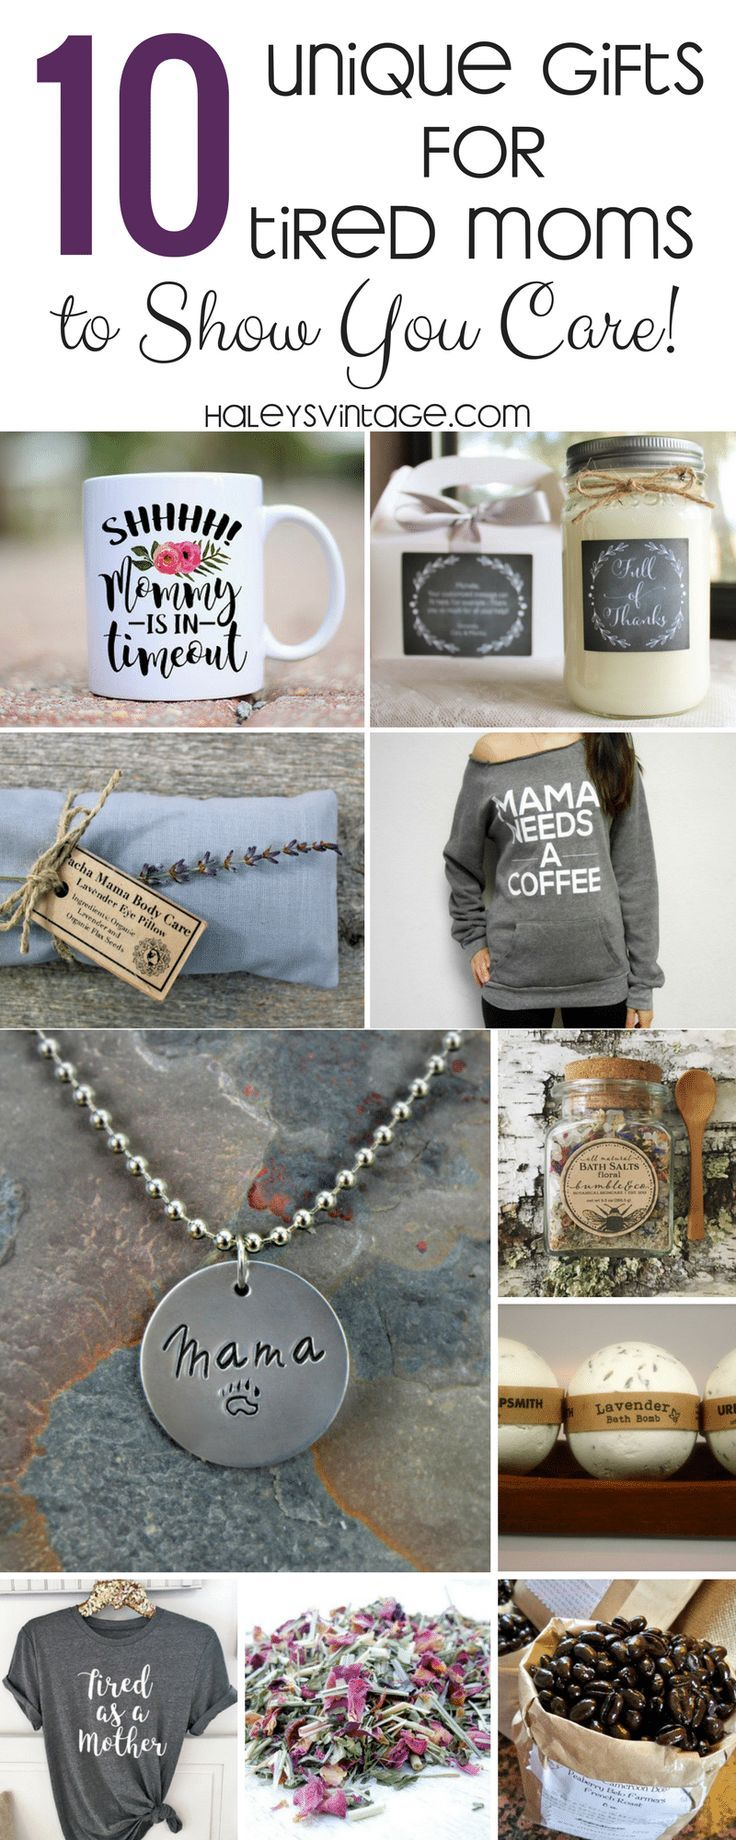 Are you looking for unique gifts for tired mom? Being a mom is a job that never ends! Show her that you care with these 10 gifts that'll make her day. via @haleysvintage